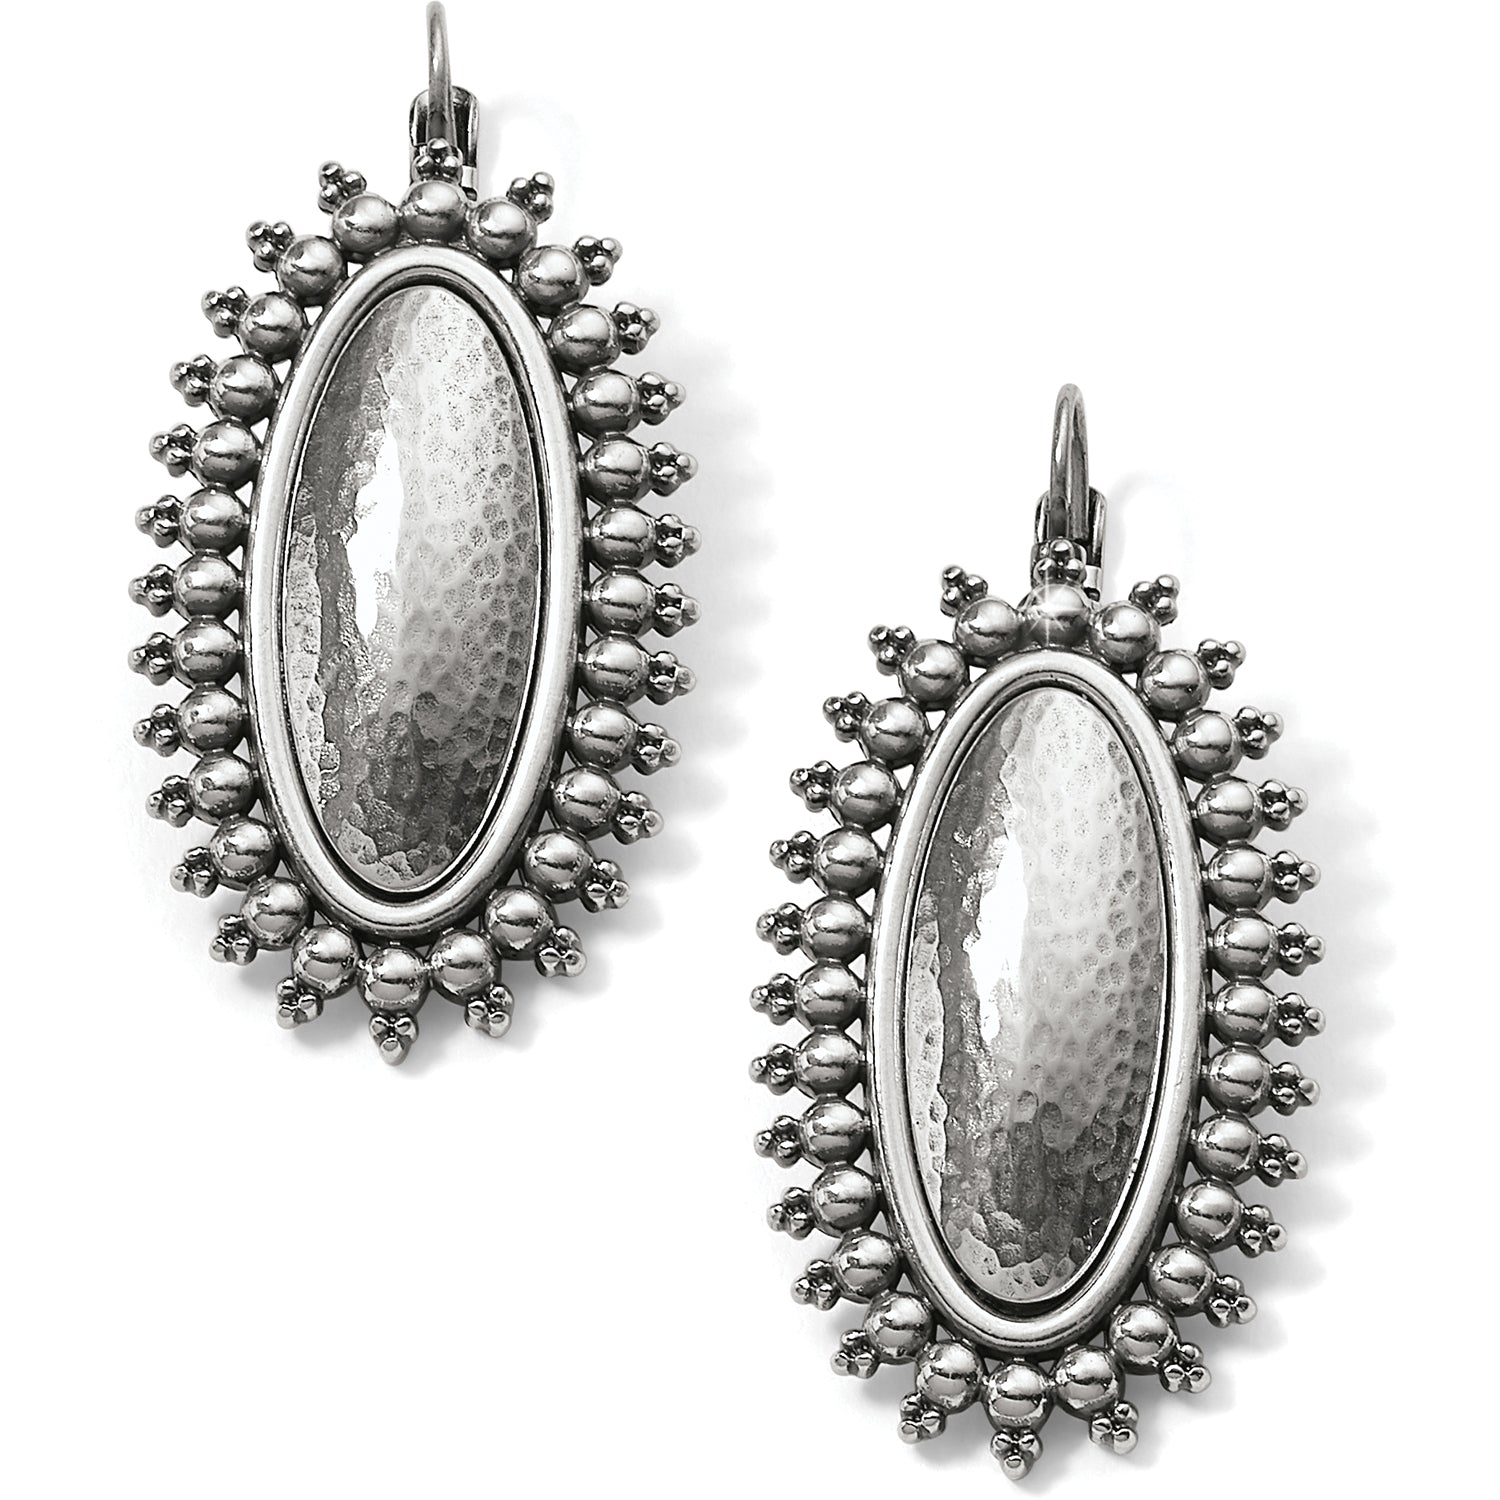 Brighton Jewelry Telluride Leverback Earrings. At once elegantly sporty and lively, this jewelry collection offers two old-world handcrafting techniques--hammering and granulation. These statement-making drops lend an instant Boho vibe to your look.